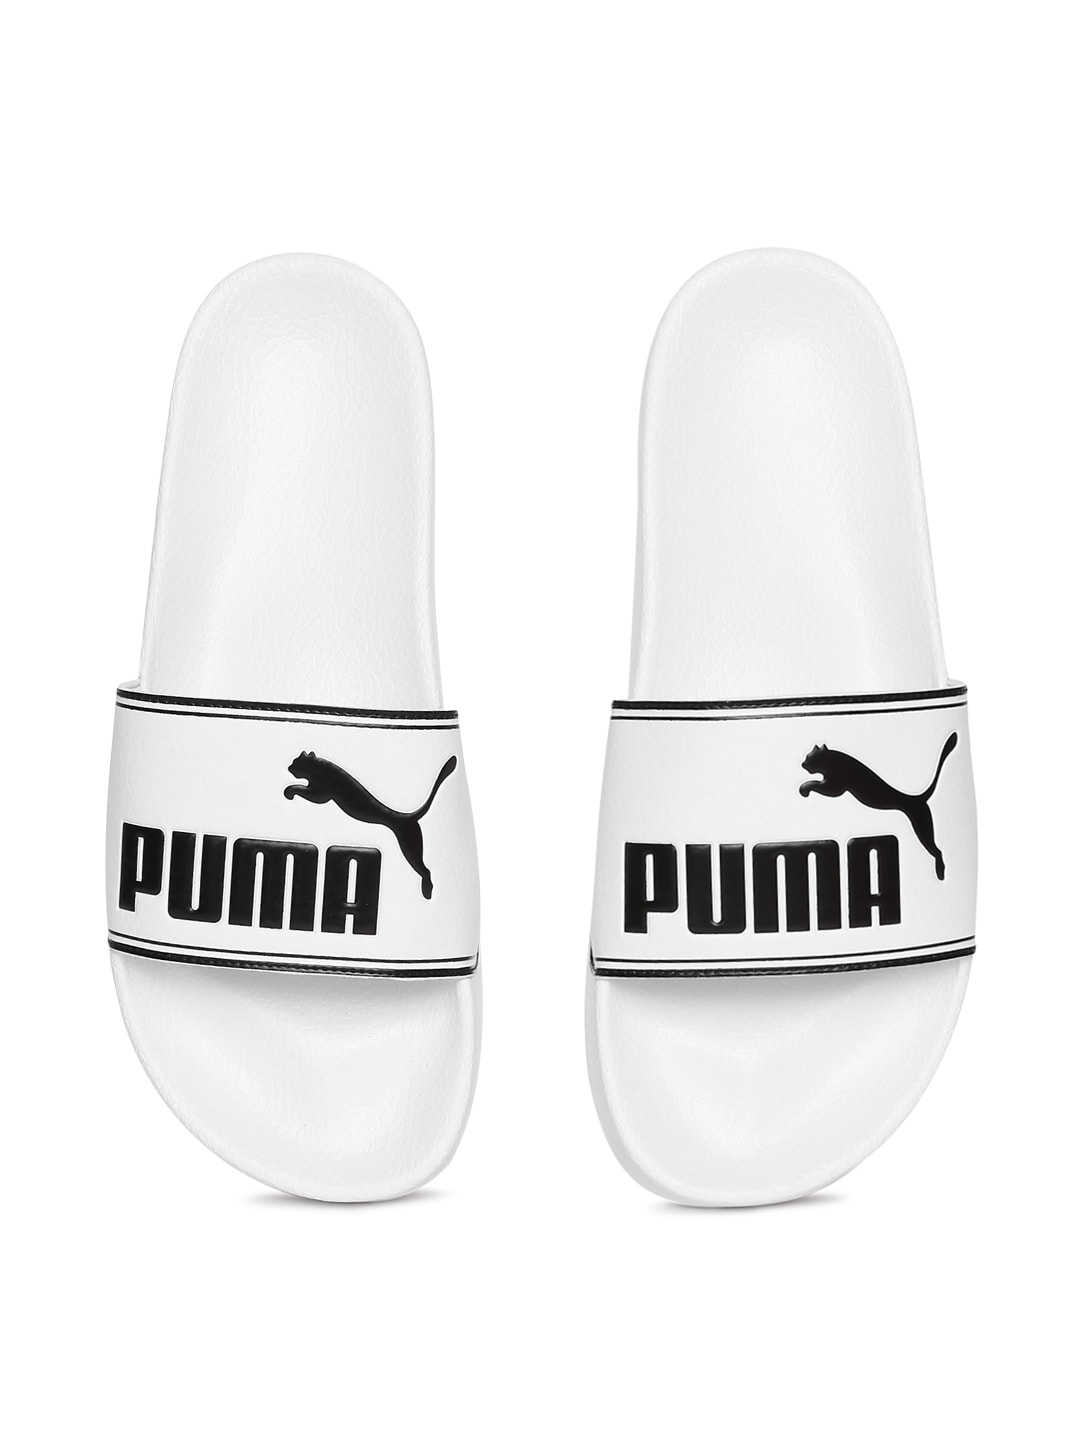 Puma Unisex White Leadcat Sliders image